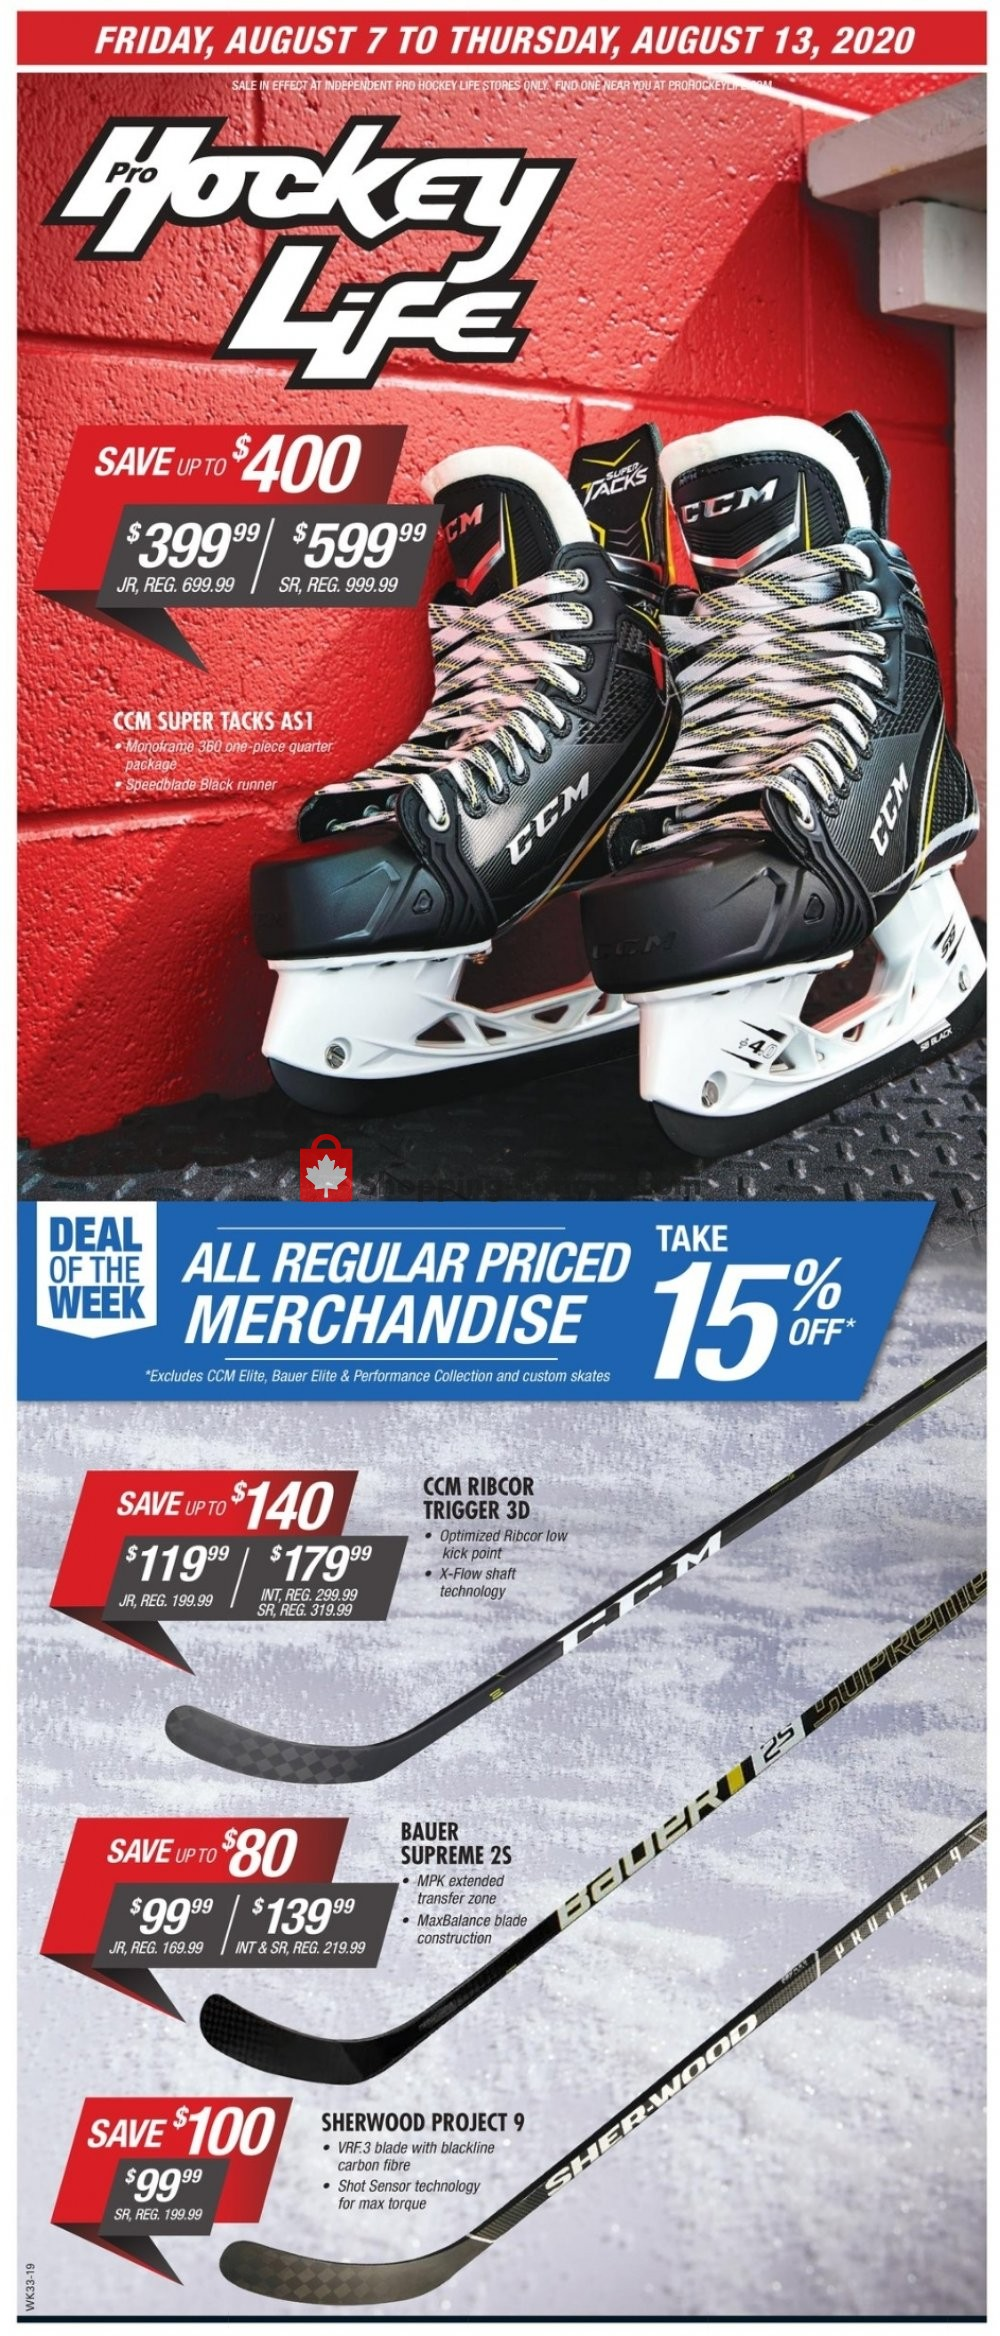 Flyer Pro Hockey Life Canada - from Friday August 7, 2020 to Thursday August 13, 2020